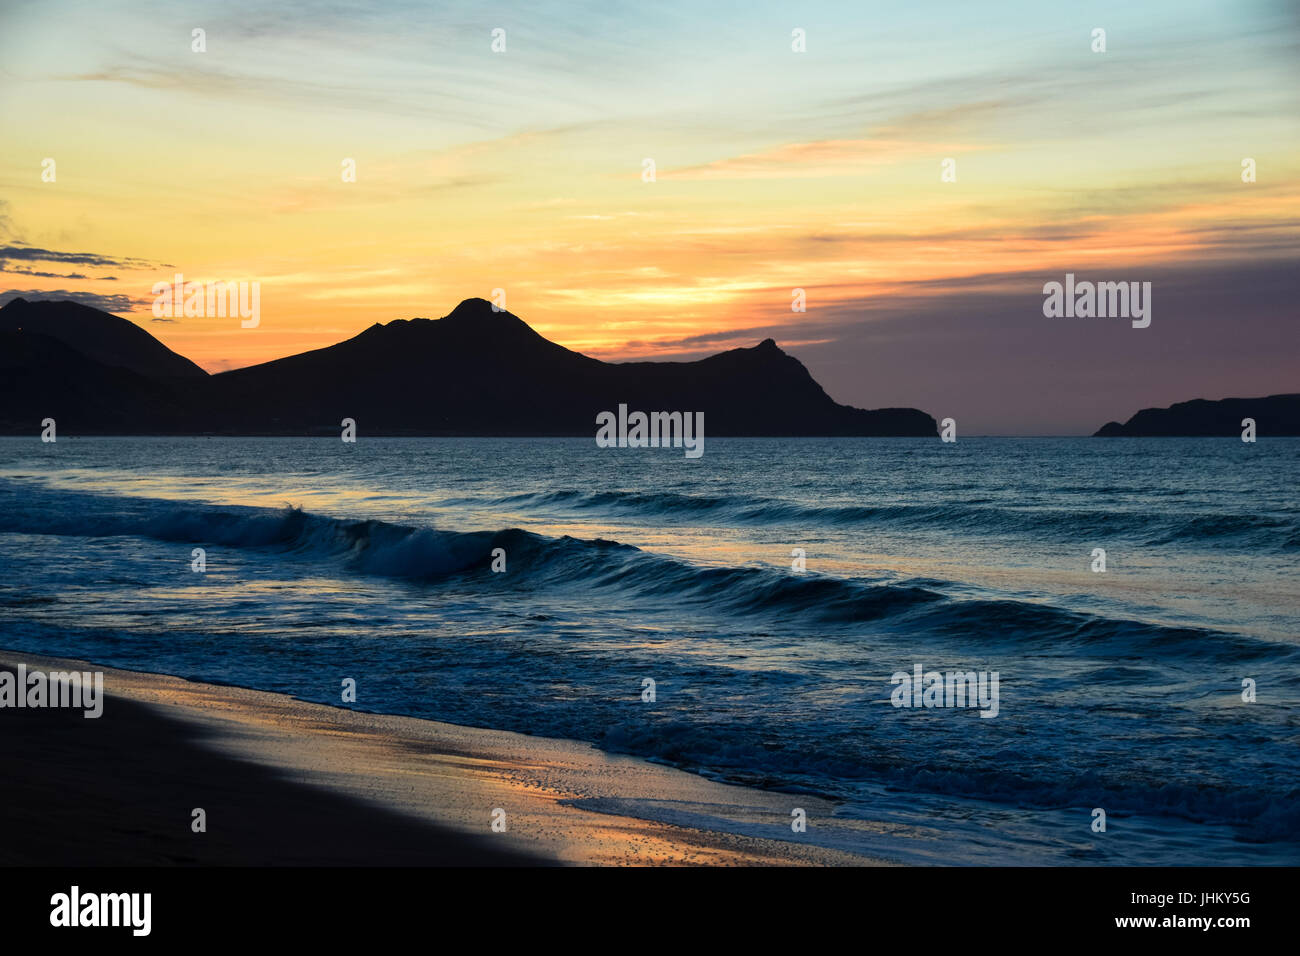 Sunrise over the headland to the east of Vila Baleira in Porto Santo Island, Madeira, Portugal - Stock Image